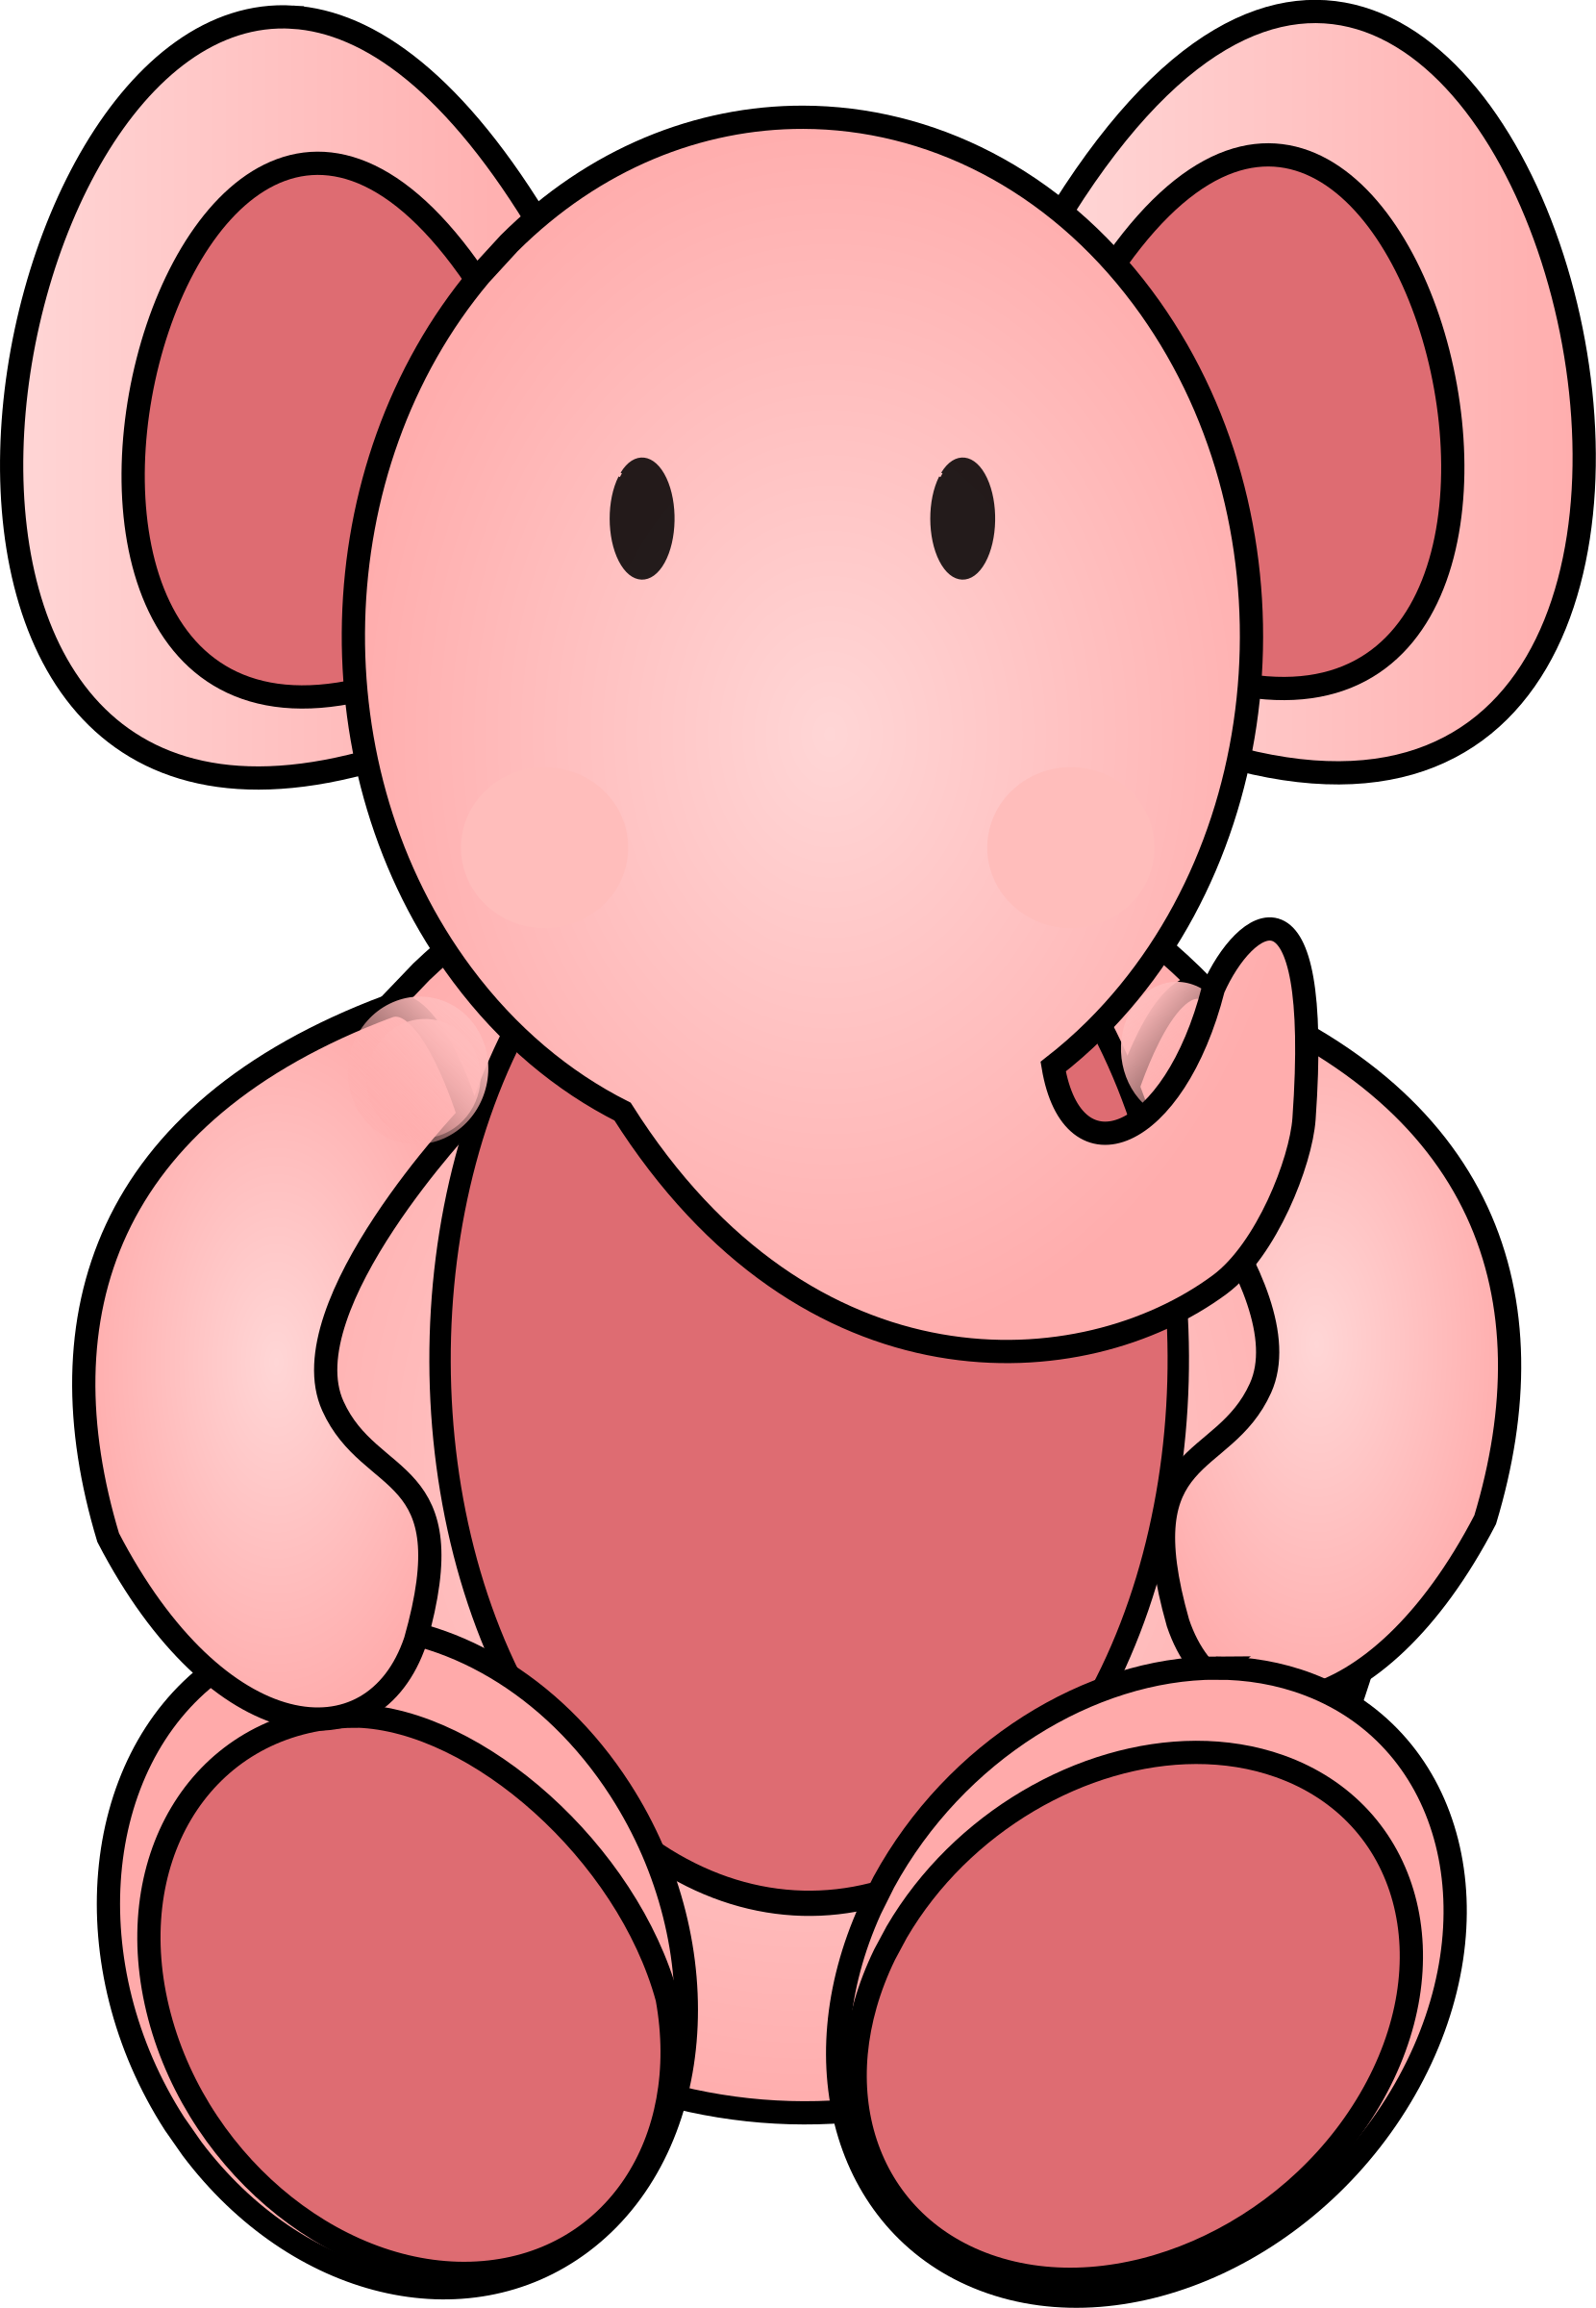 Clipart toys elephant. Pink big image png